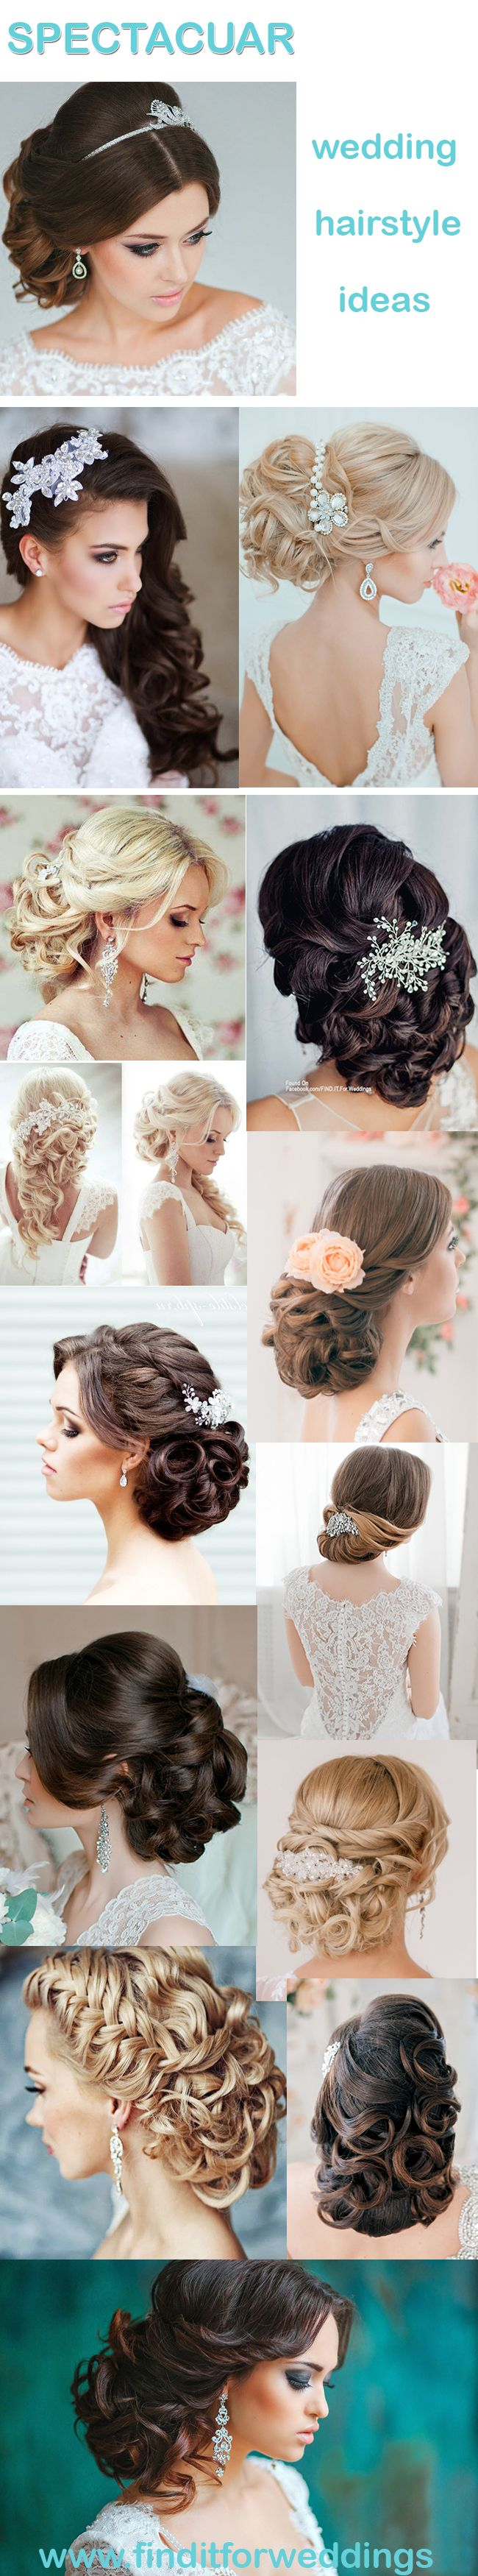 Popular wedding hairstyles that will make you feel like a Princess.For more fashion and wedding inspiration visit www.finditforweddings.com Wedding updos